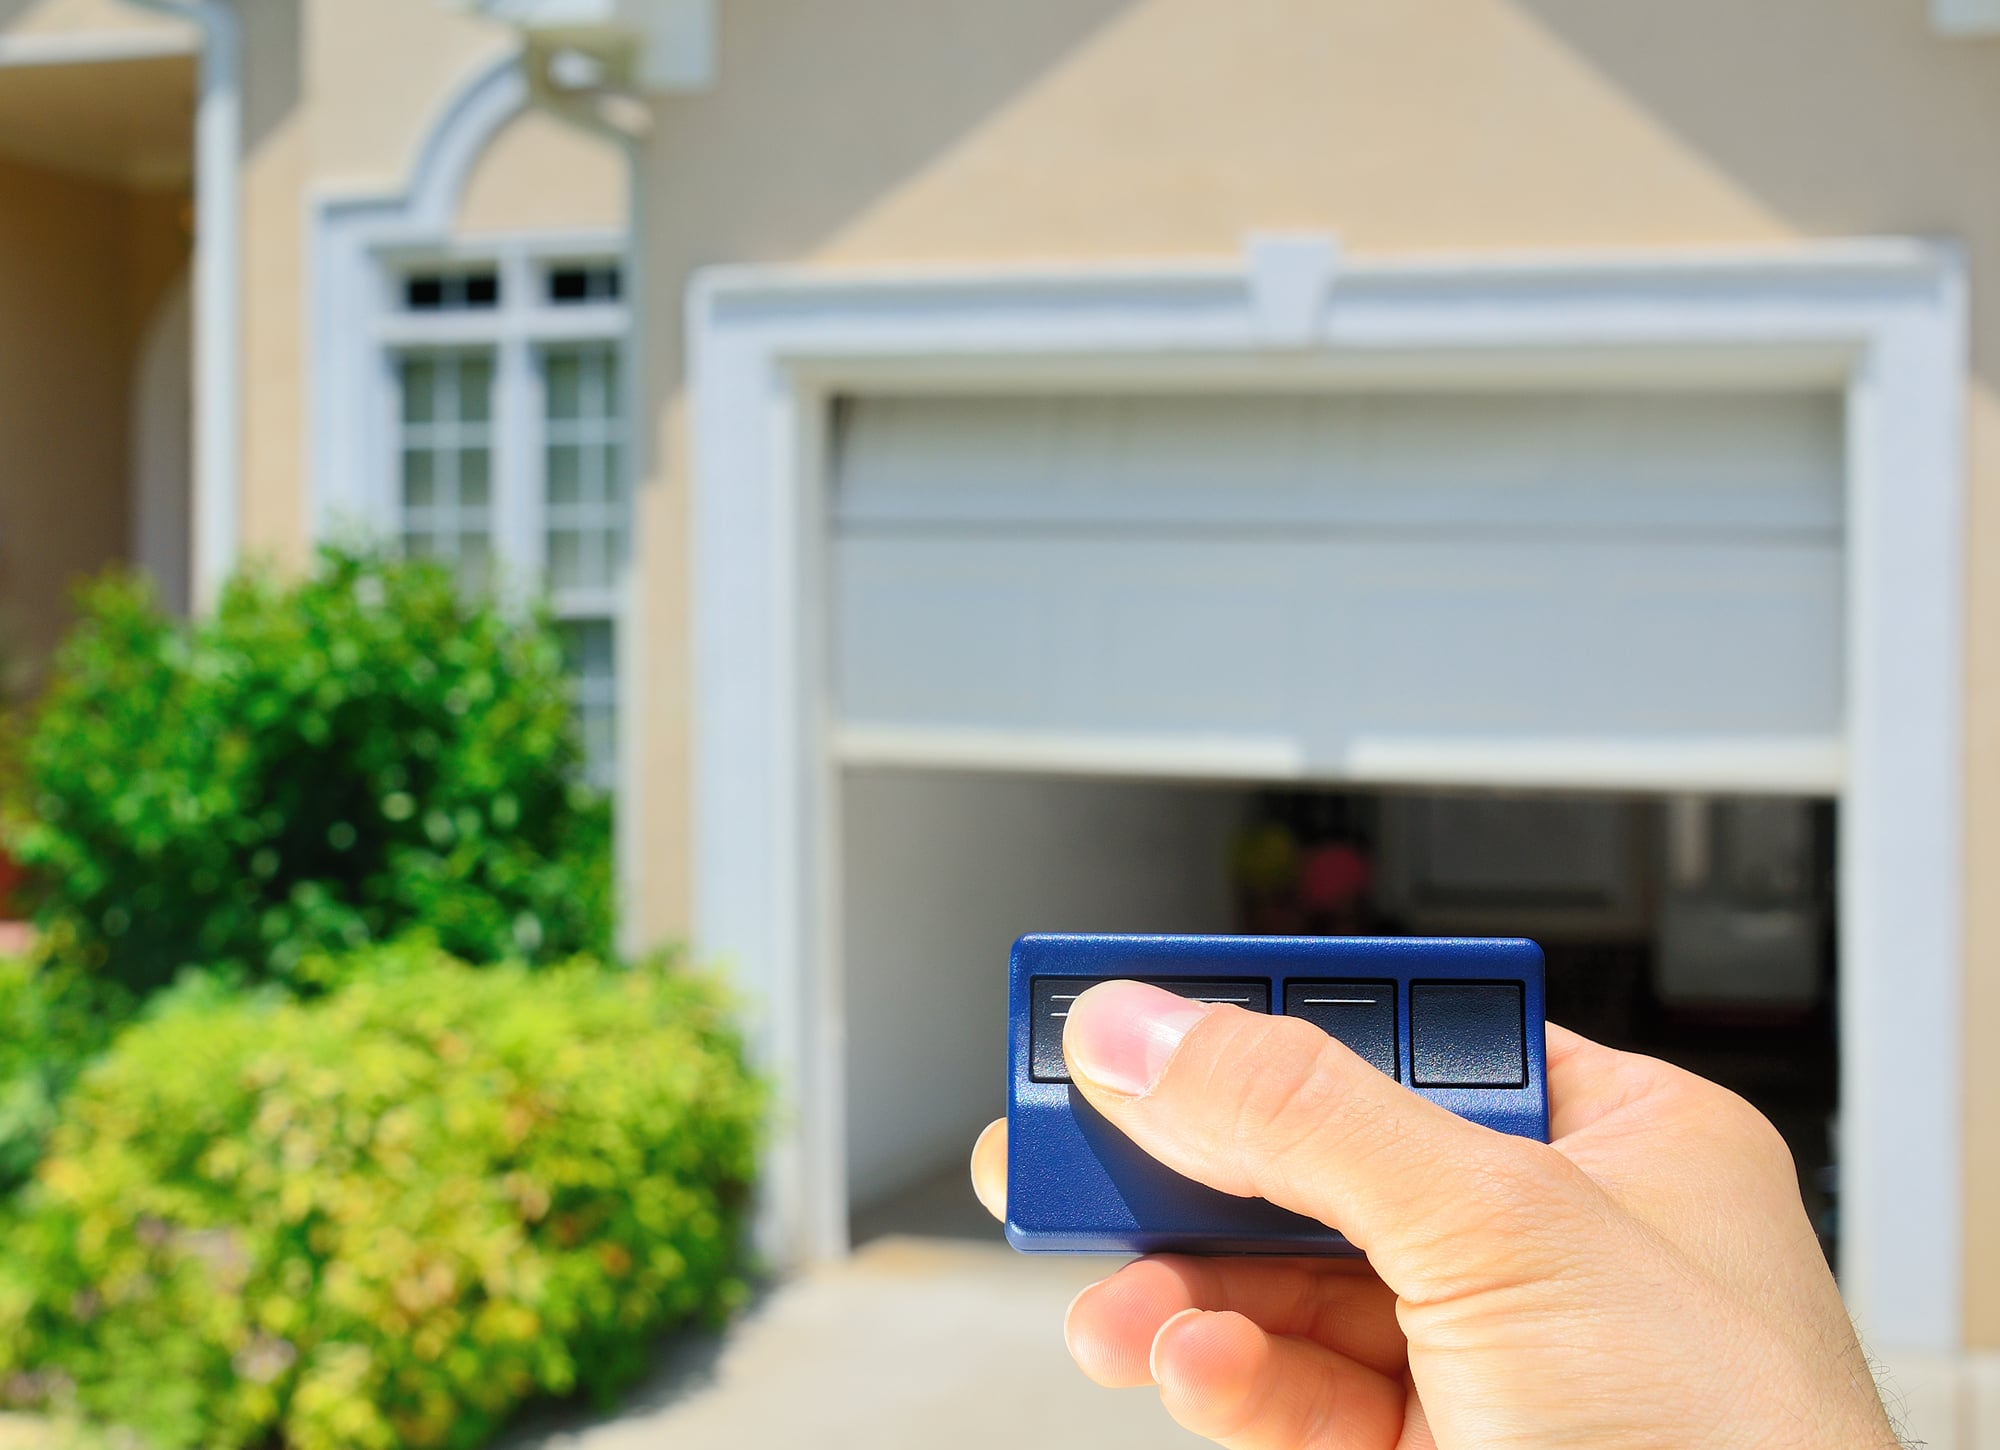 Island Garage Door Company - Garage Door Remote Control